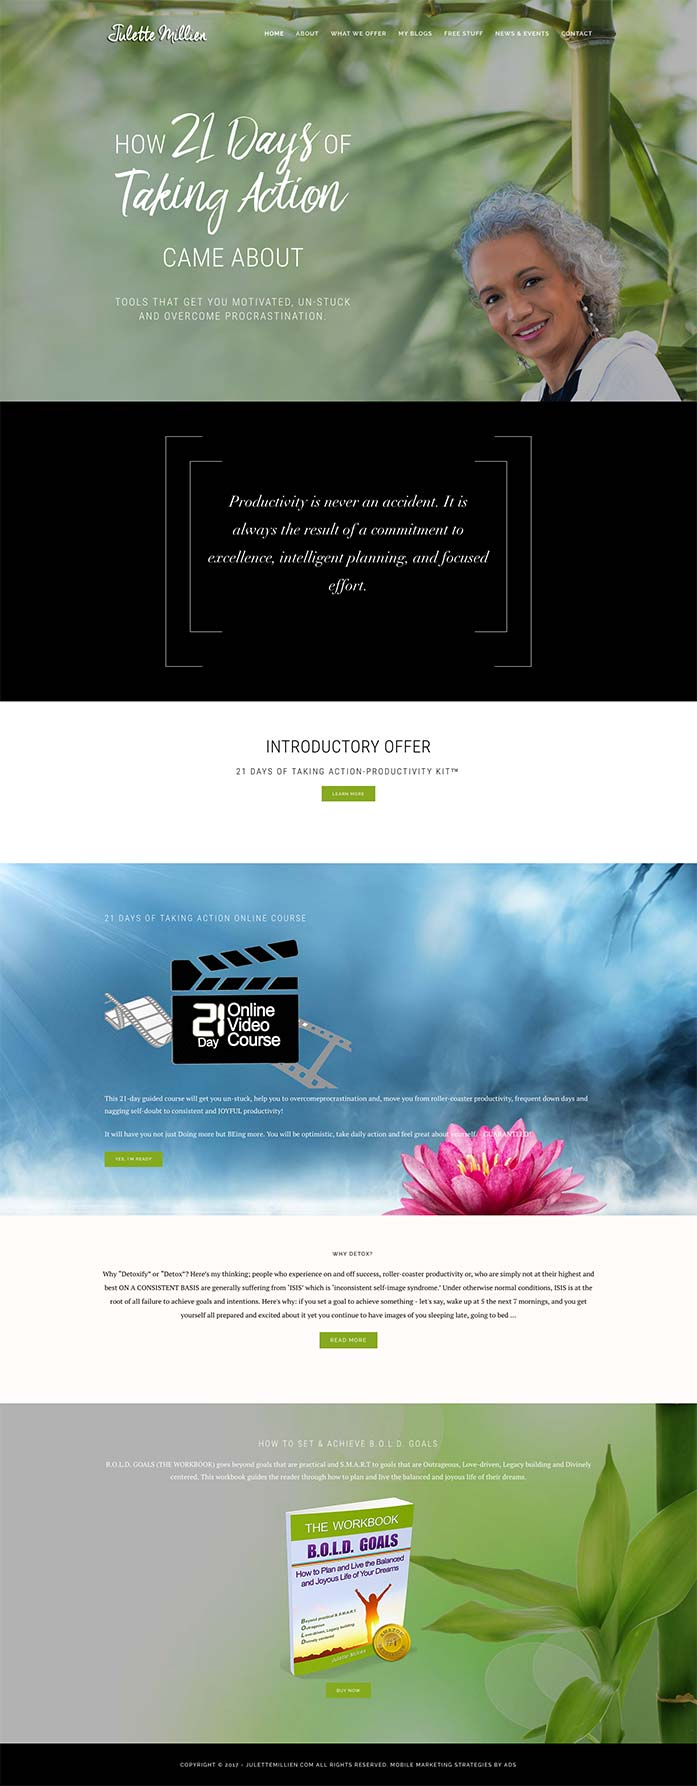 julette Millien website redesign